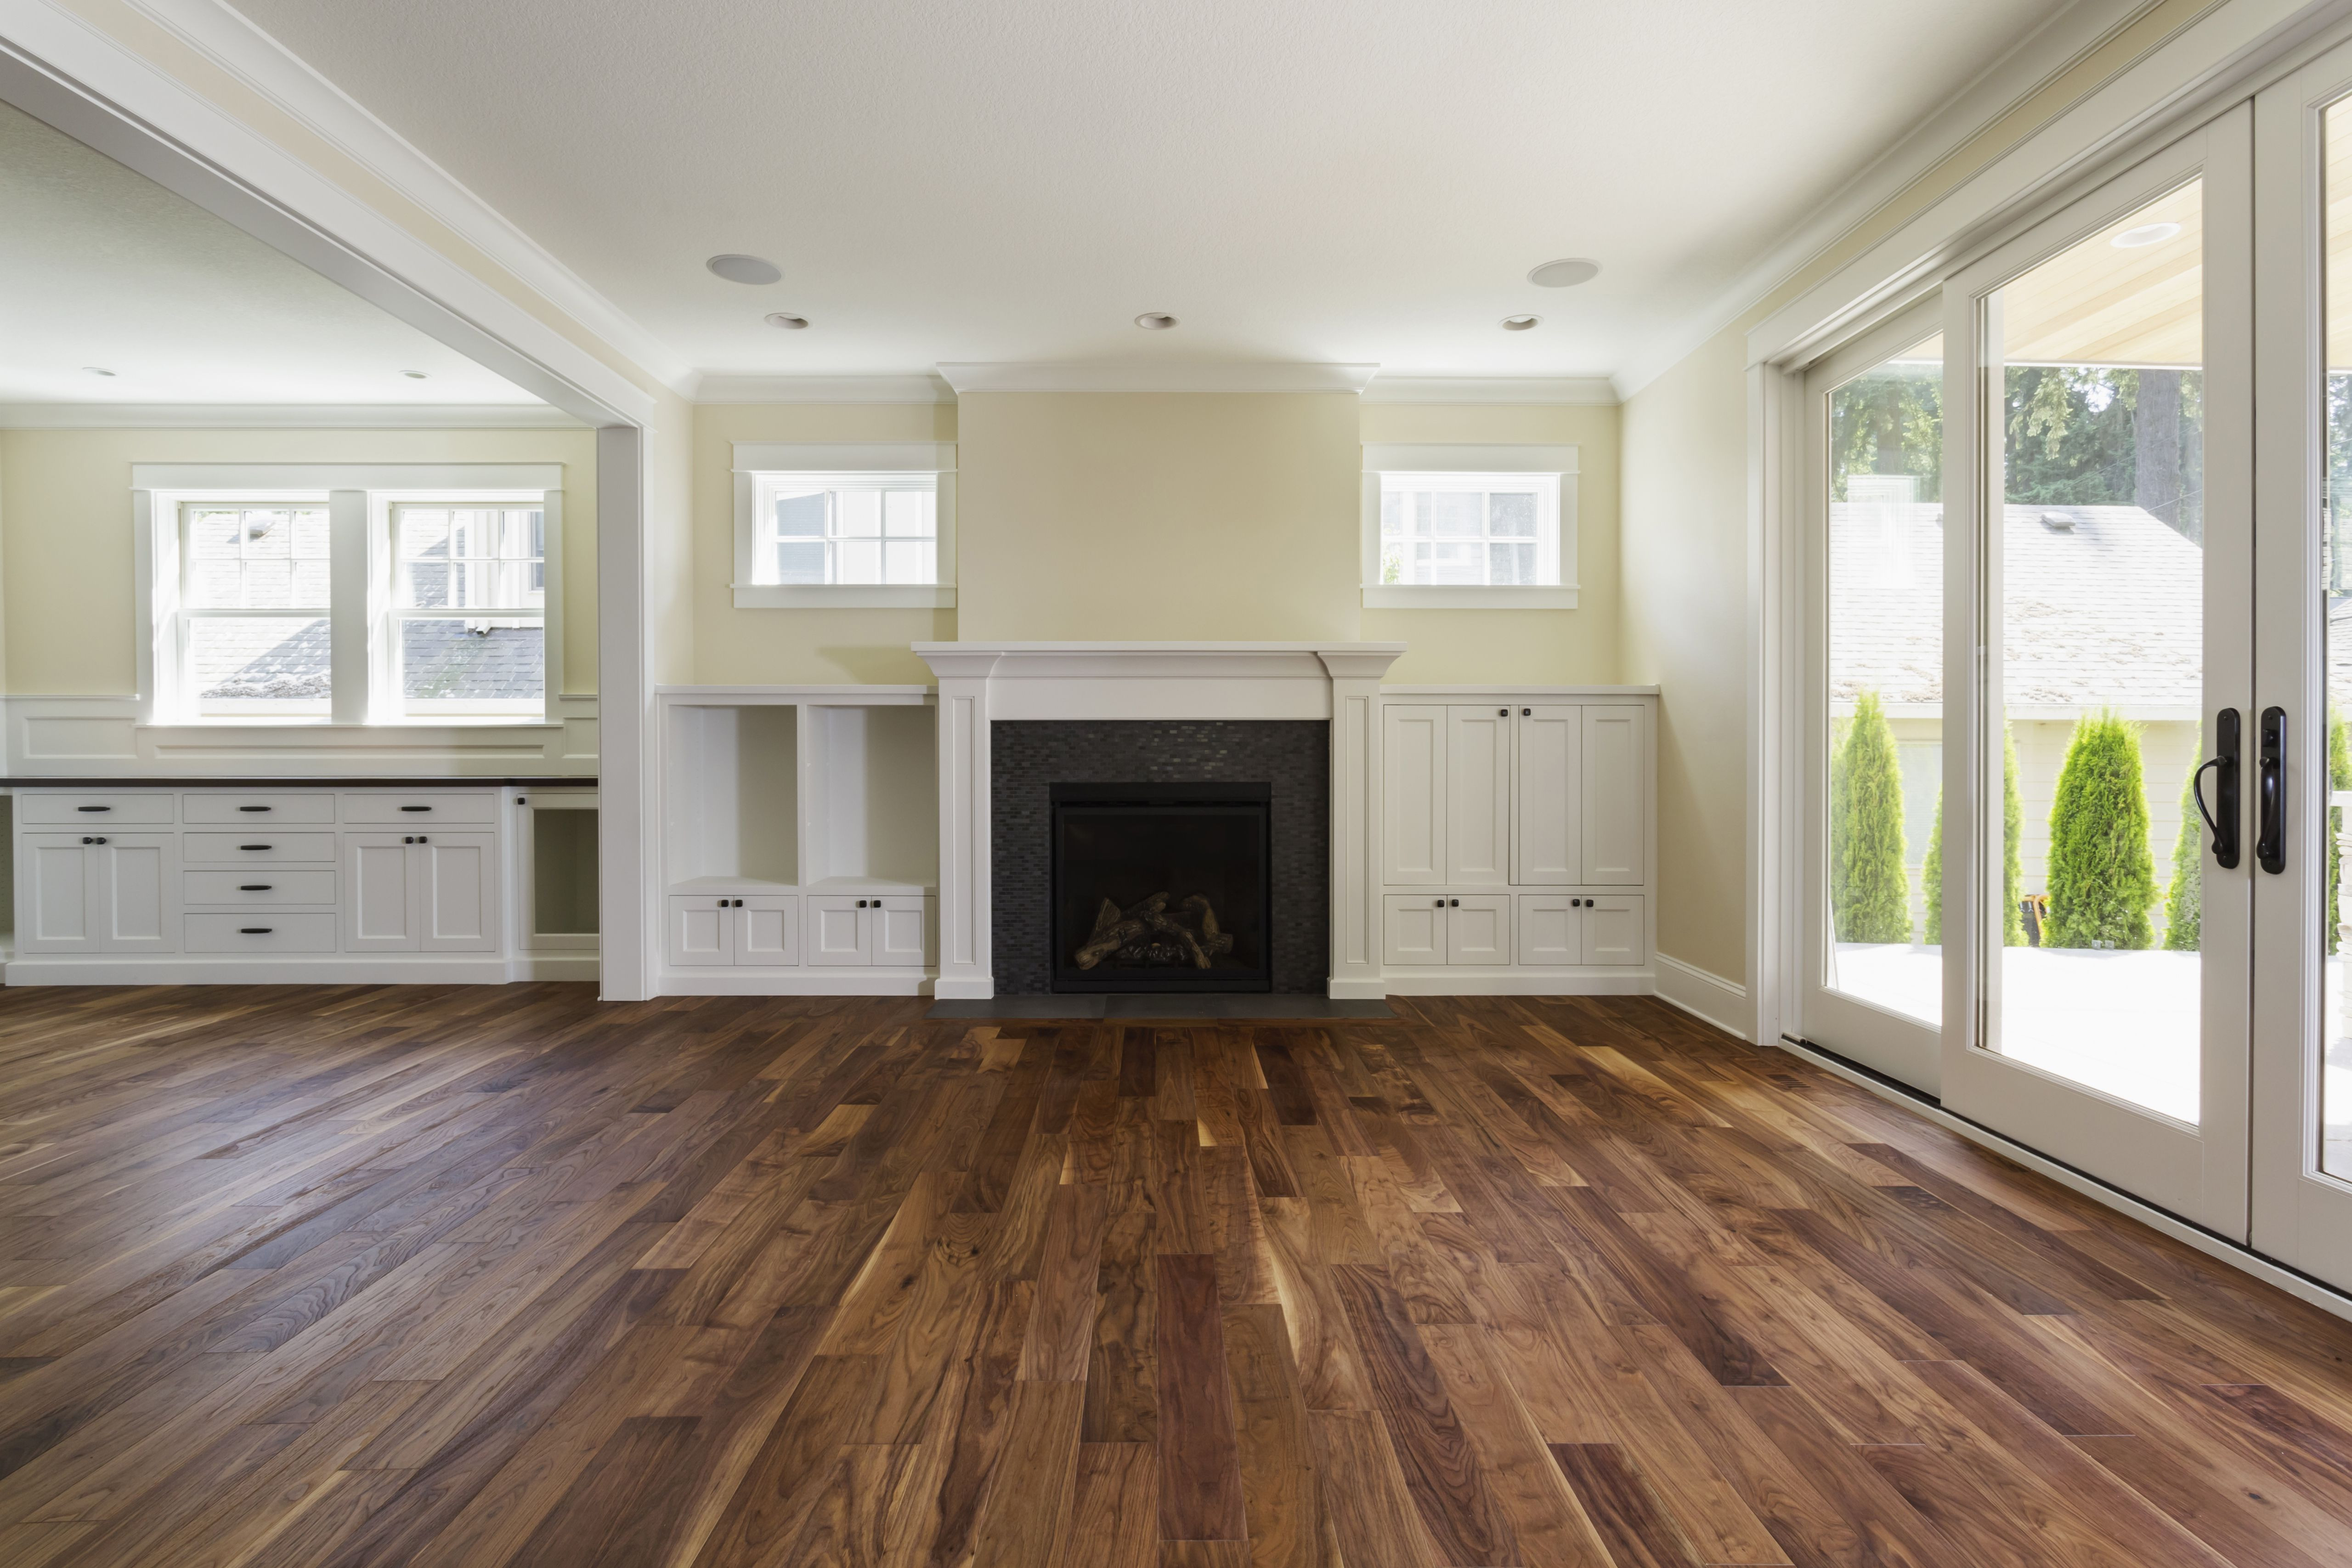 diy hardwood floor installation of the pros and cons of prefinished hardwood flooring intended for fireplace and built in shelves in living room 482143011 57bef8e33df78cc16e035397